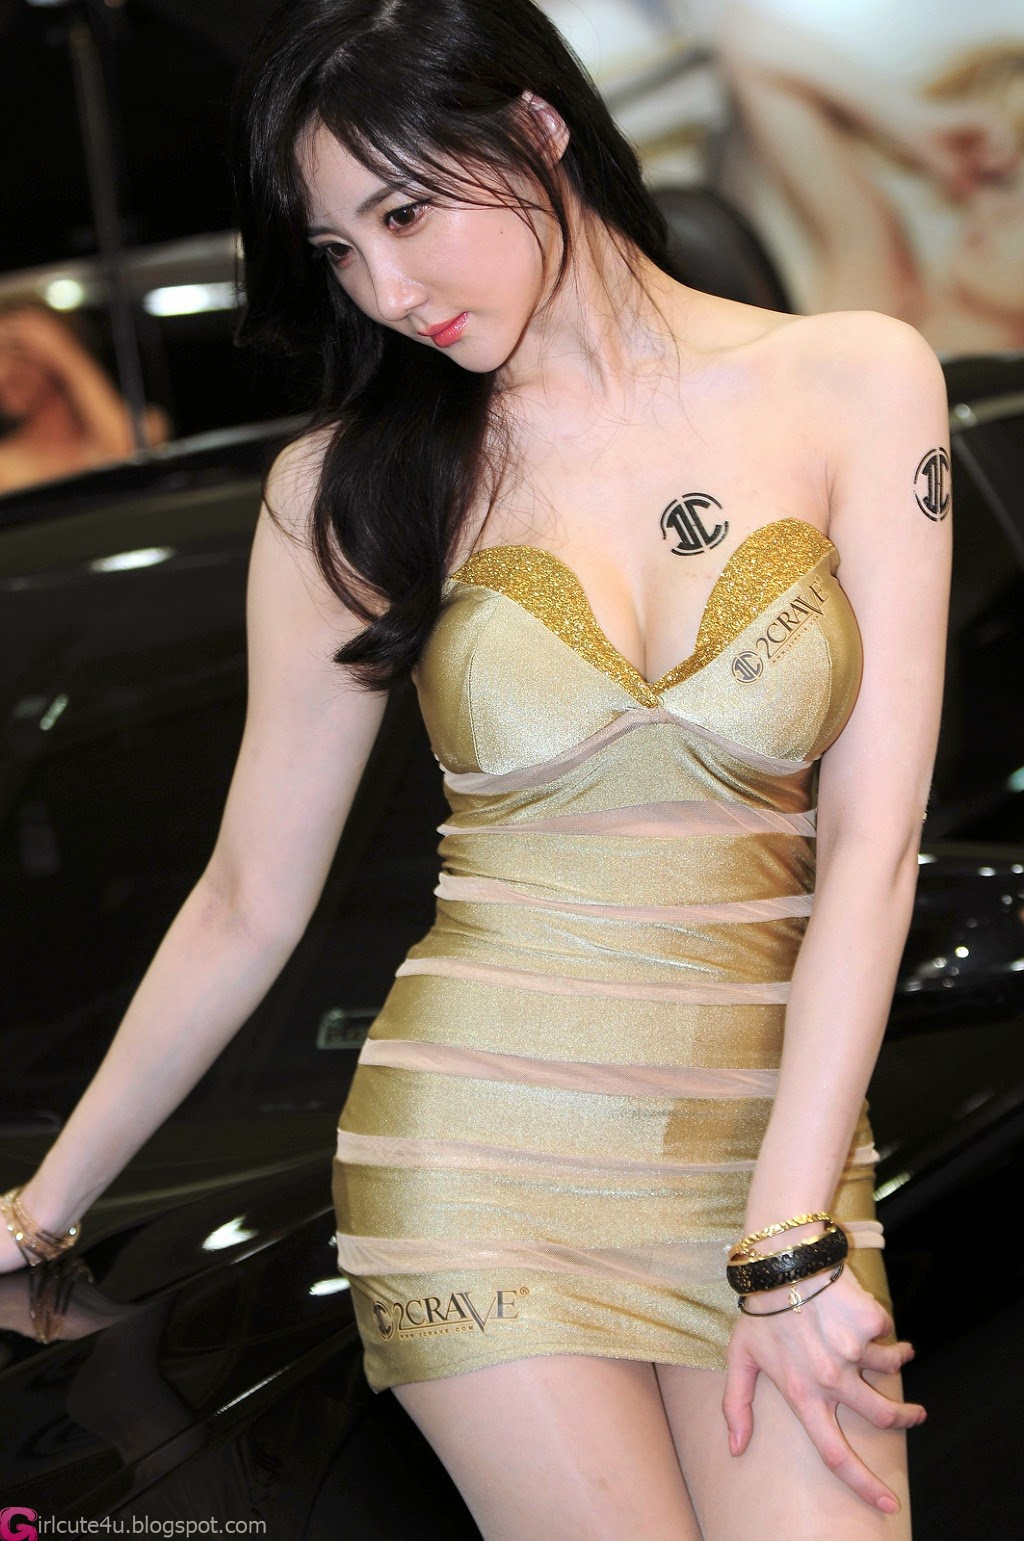 4 Yeon Da Bin - Seoul Auto Salon 2014 - very cute asian girl-girlcute4u.blogspot.com